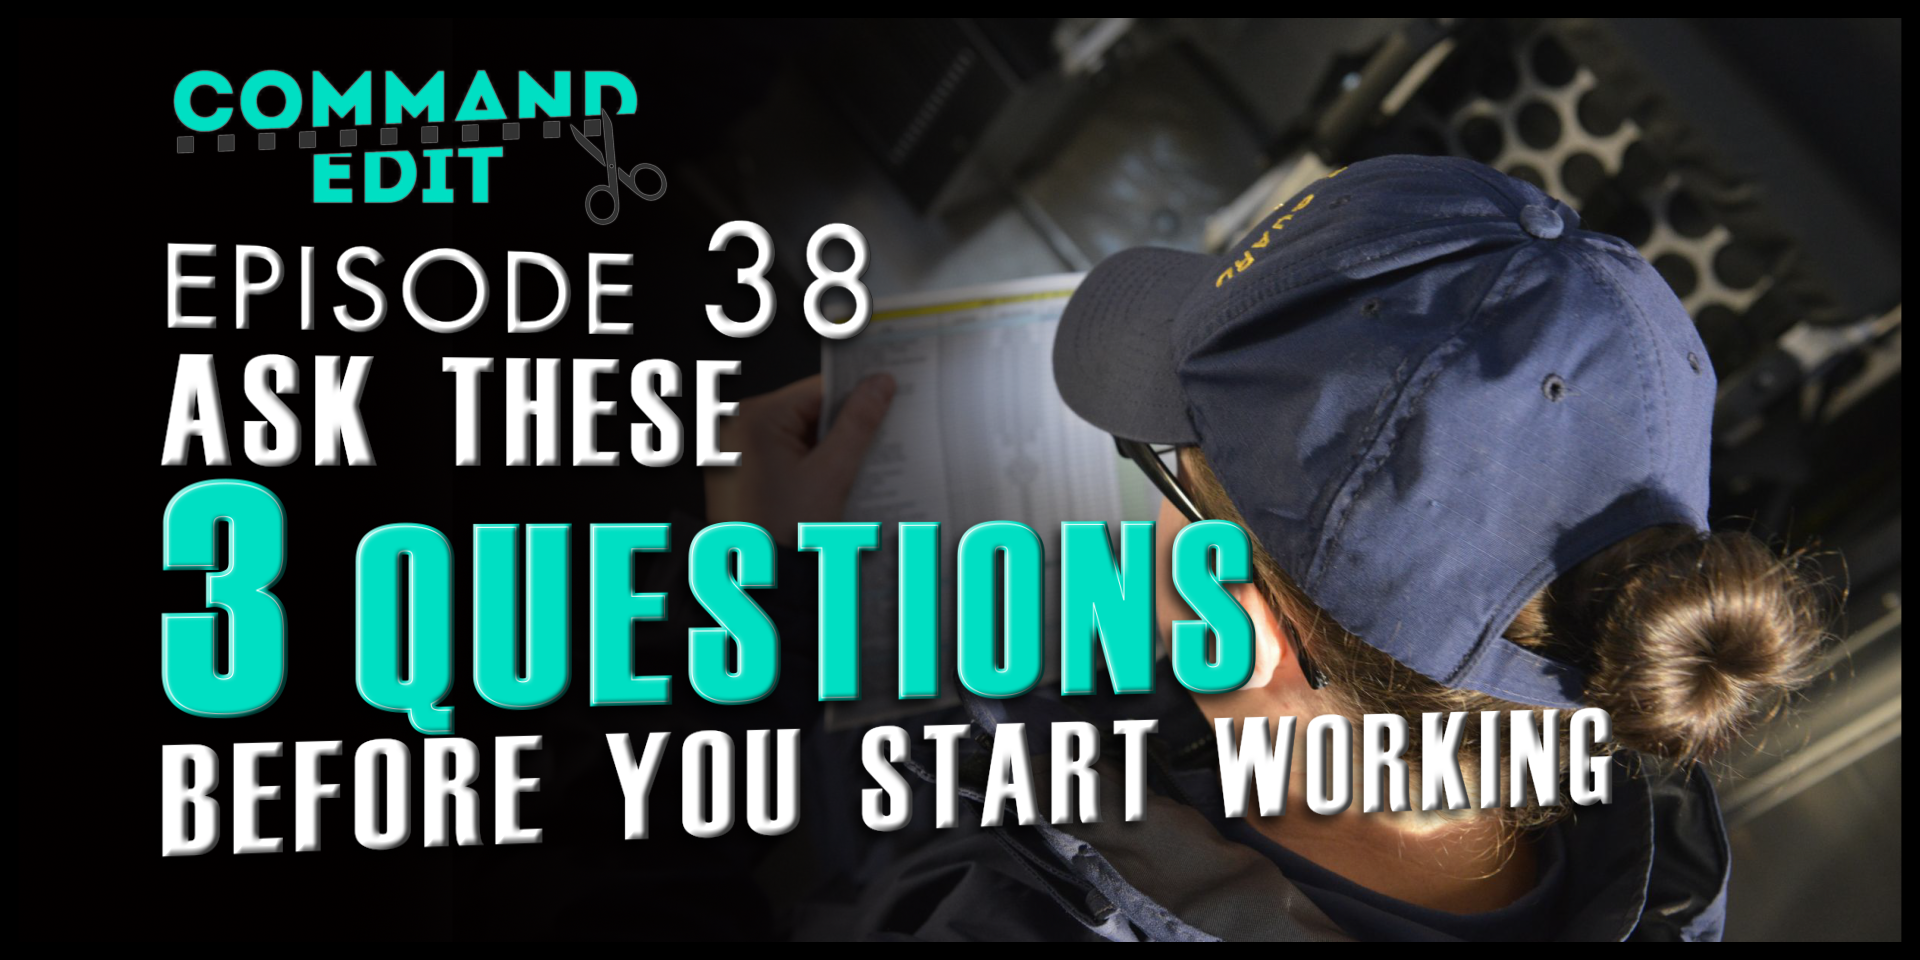 Ask these 3 pre-production questions as an editor to avoid problems later in the edit